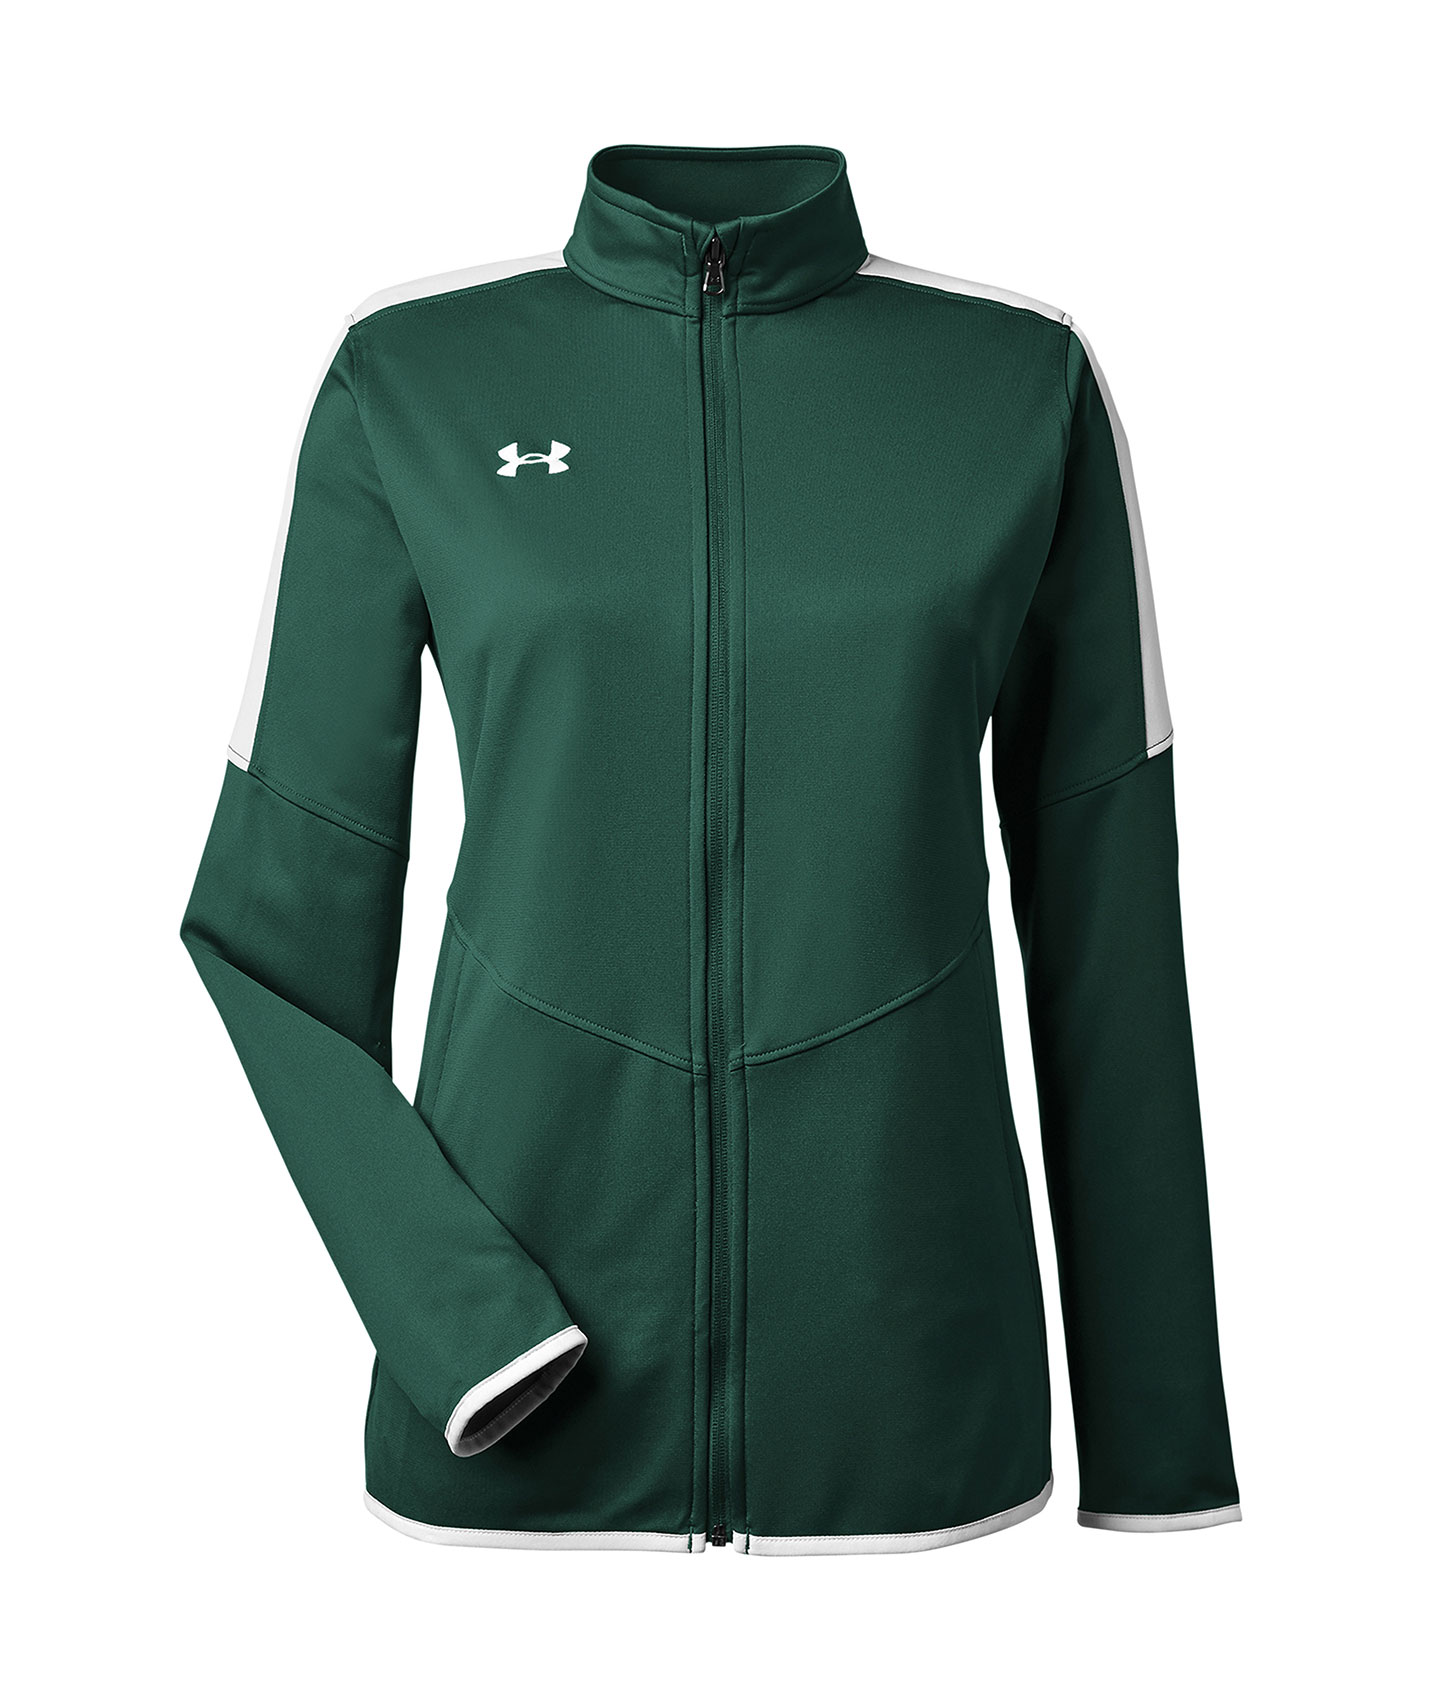 Under Armour Ladies Rival Knit Jacket